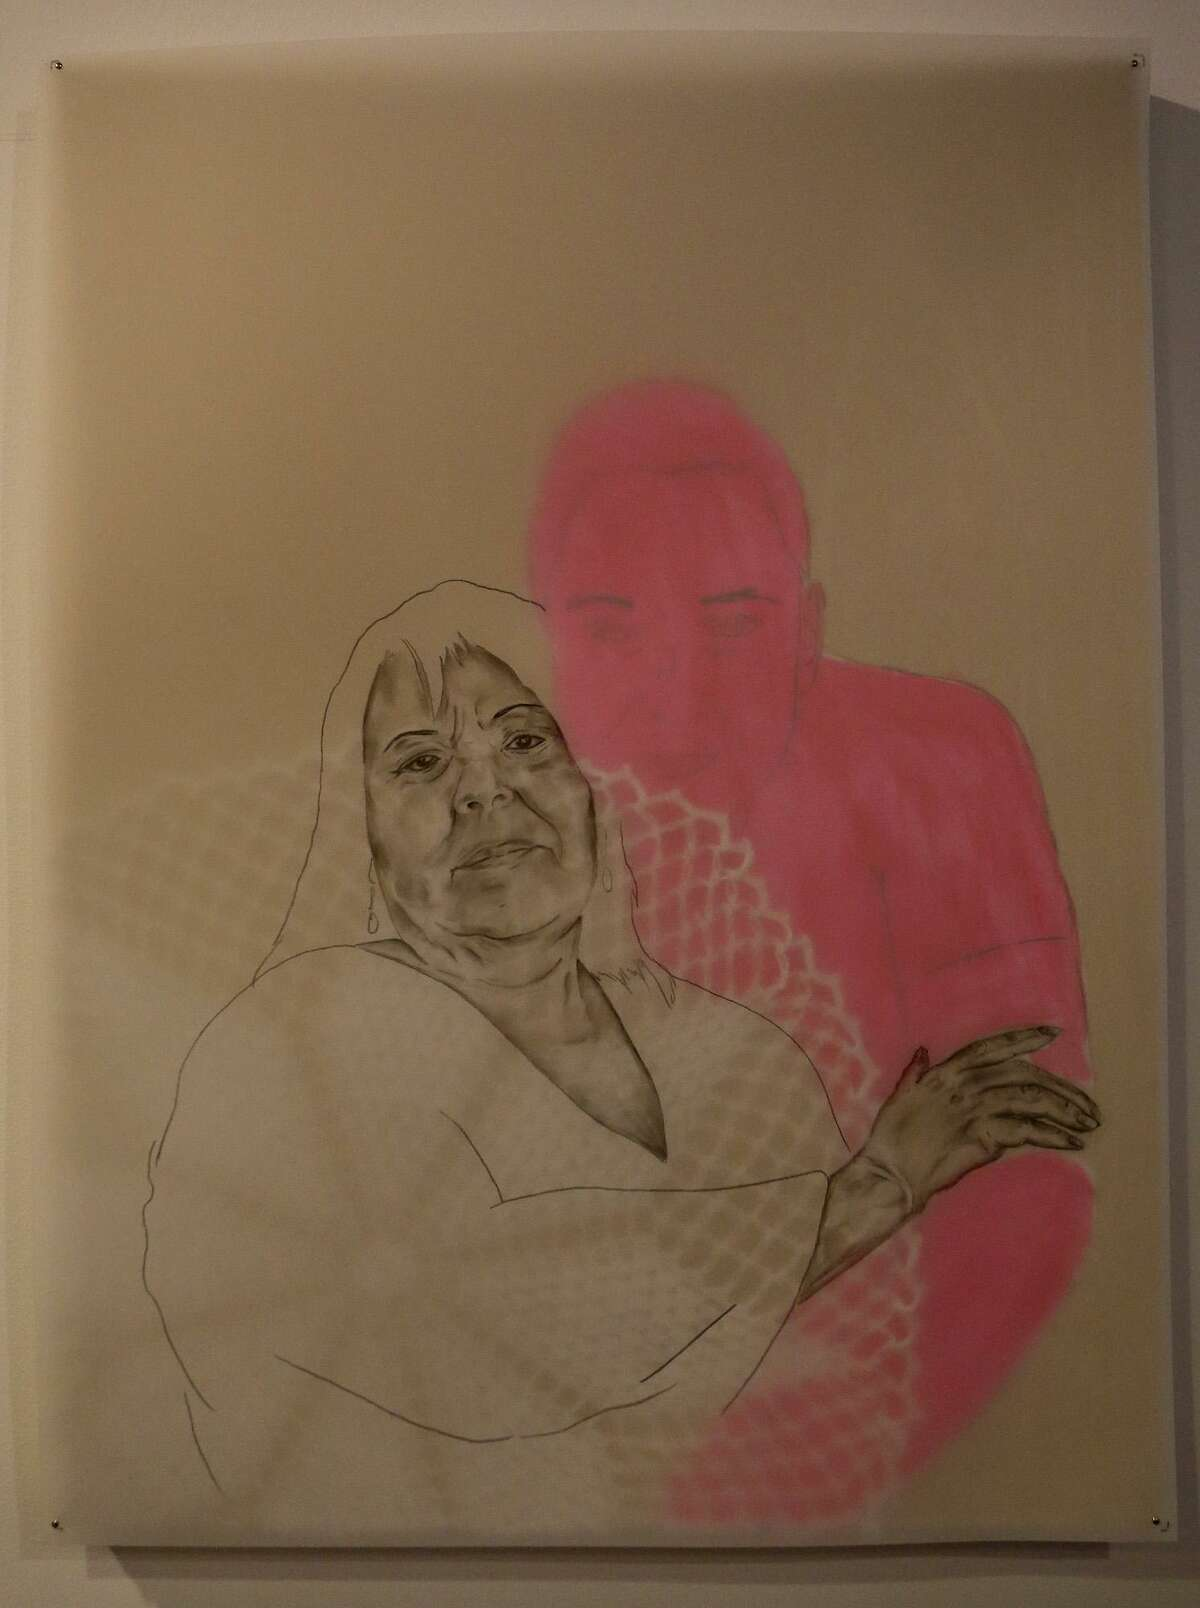 """This mixed-media pieces by Jose Villalobos was one of the works in """"Interconnectedness,"""" a two-part group exhibit exploring the mother-child relationship he organized at Clamp Light. The pink figure in the background is a self-portrait of the artist."""